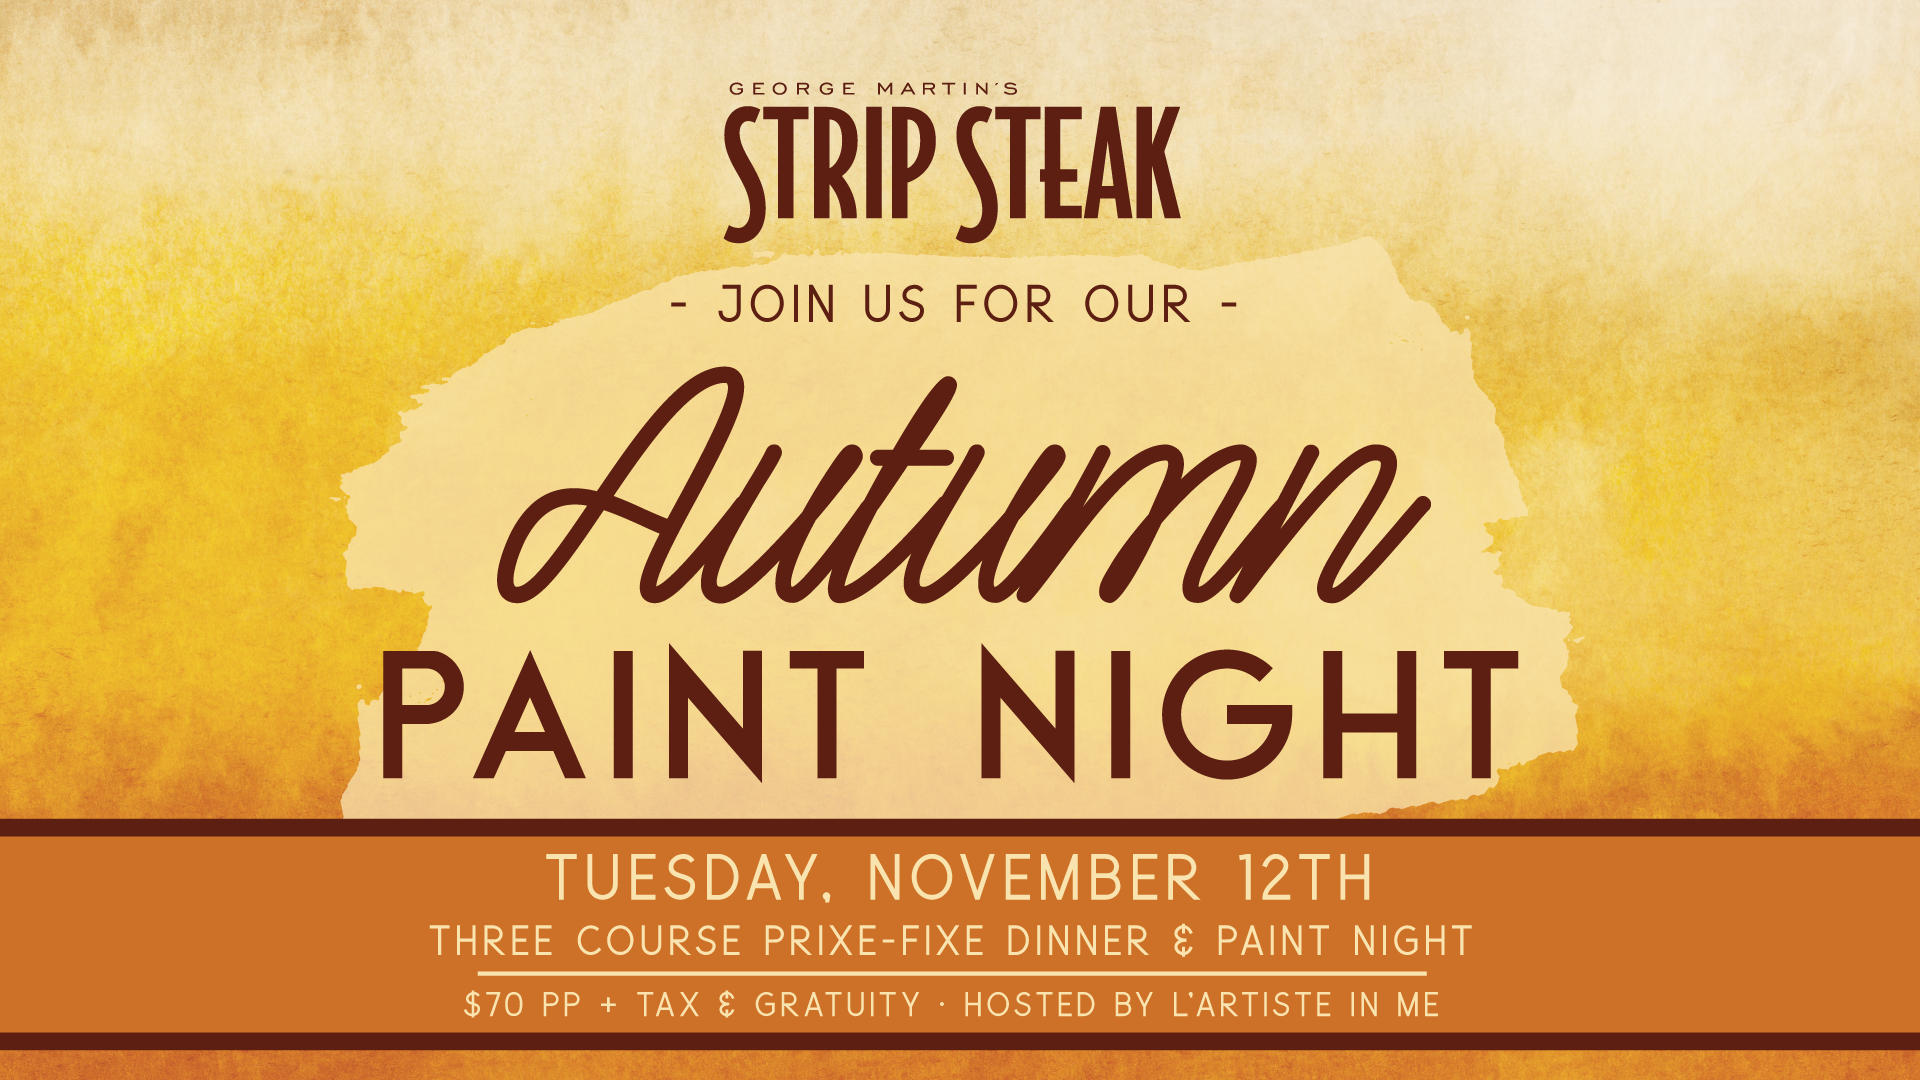 Flyer for Strip Steak Autumn Paint Night on November 12th at 6pm, with a three course prix-fixe dinner and paint night for $70pp + tax & gratuity - hosted by L'Artiste in Me